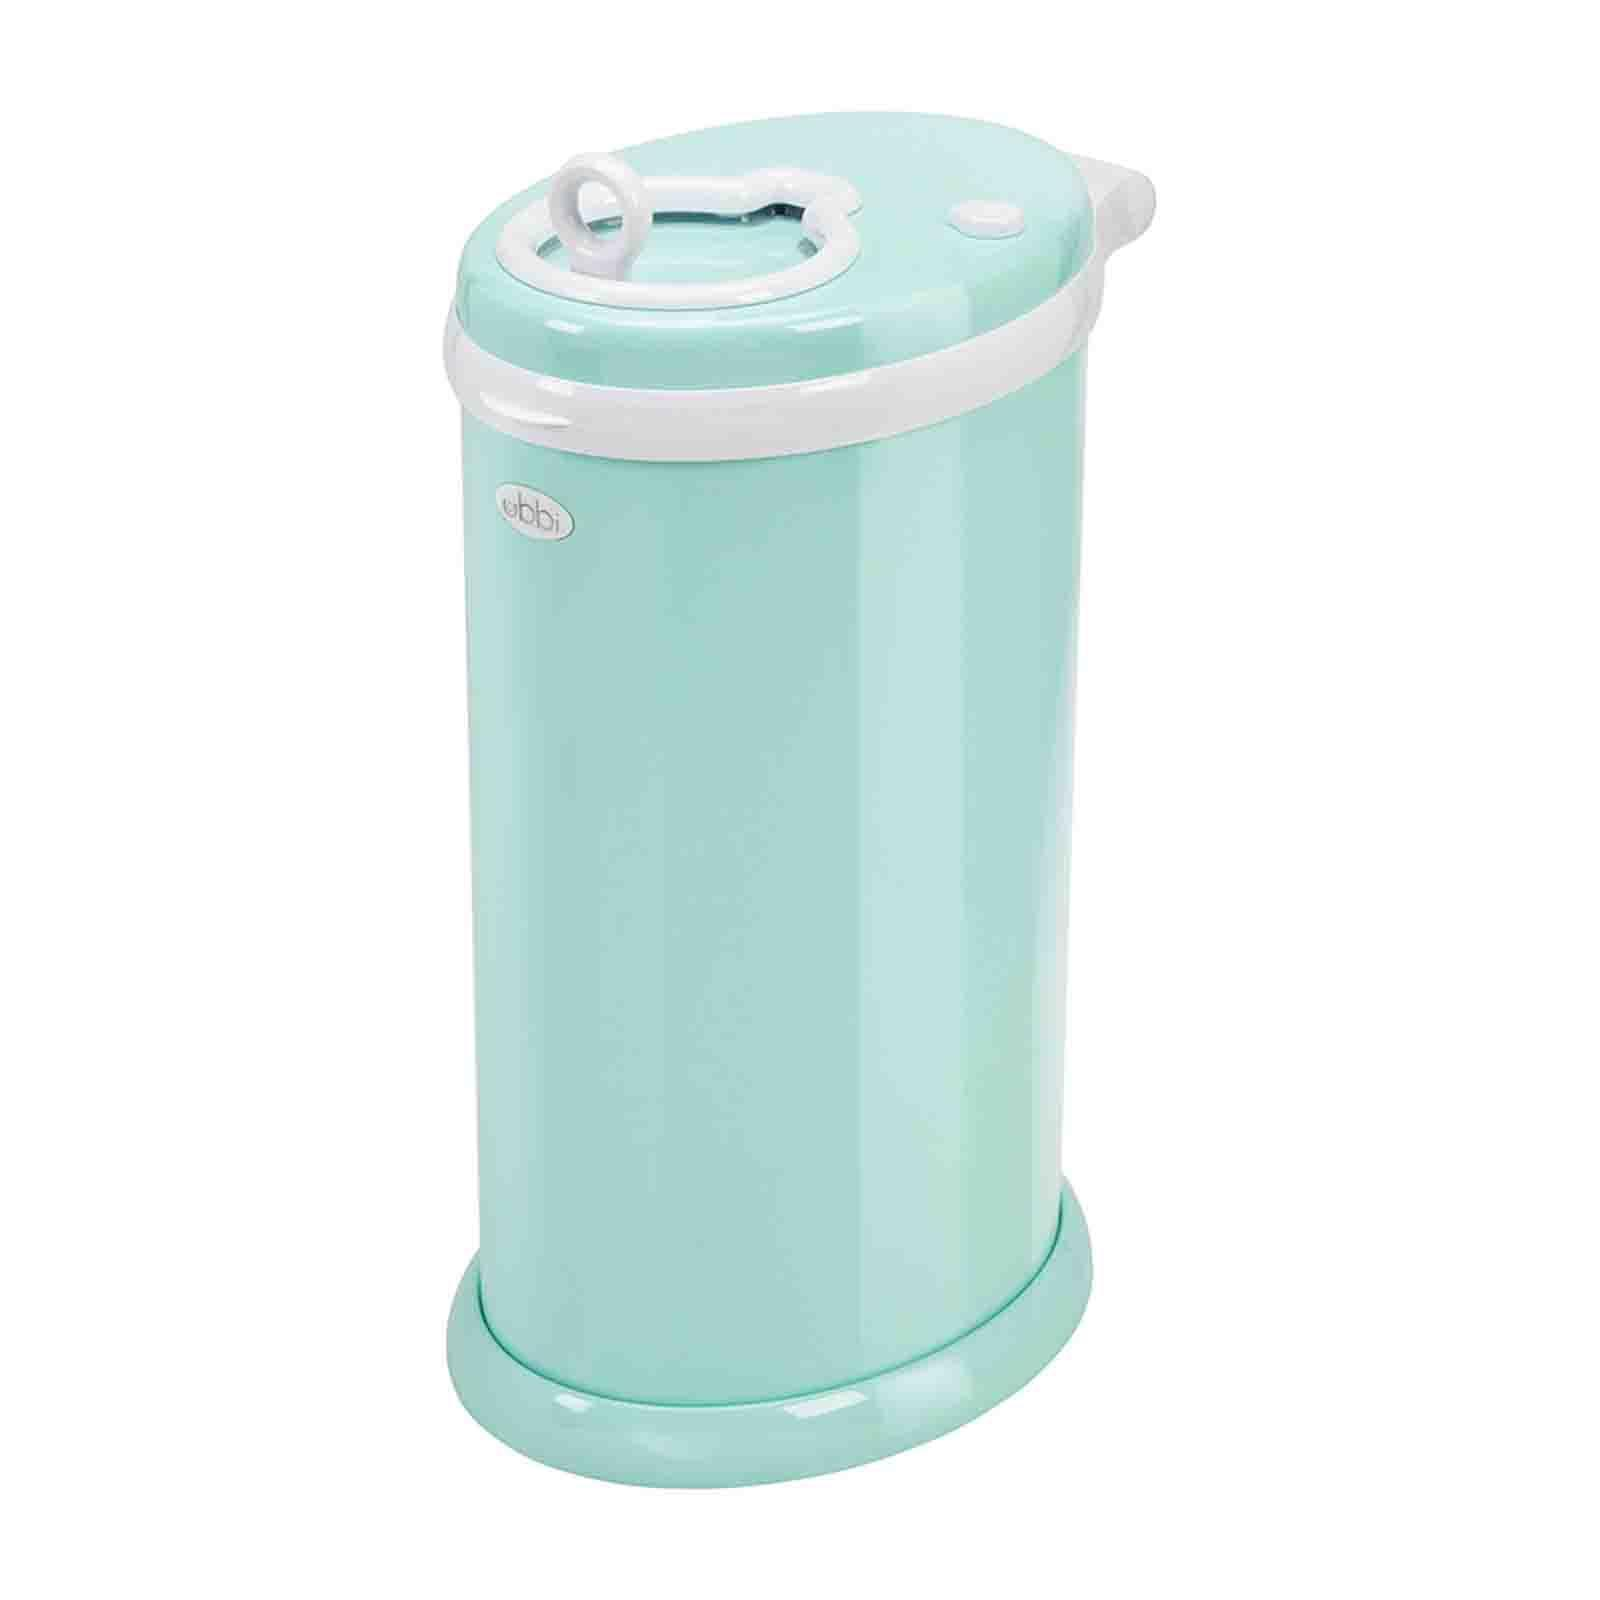 Ubbi Diaper Pail - Mint By Redmart.